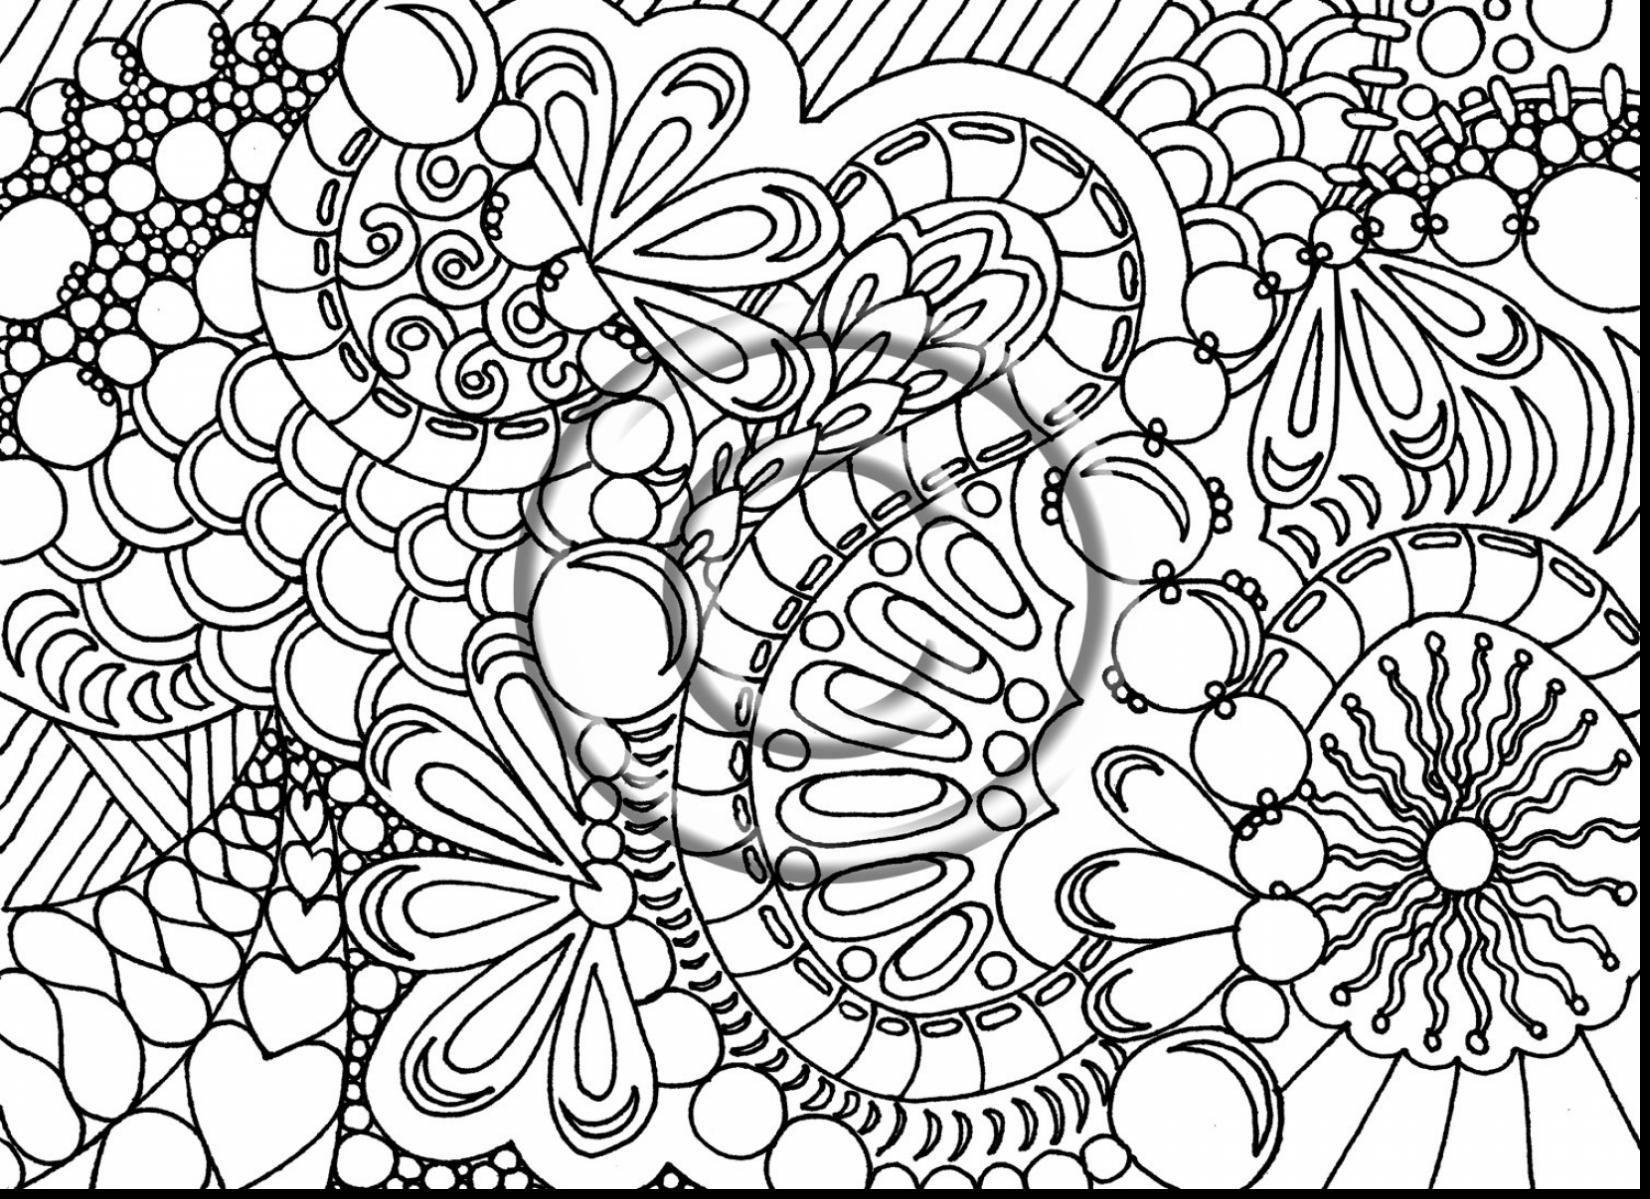 shapes images for coloring printable shapes coloring pages for kids cool2bkids shapes for coloring images